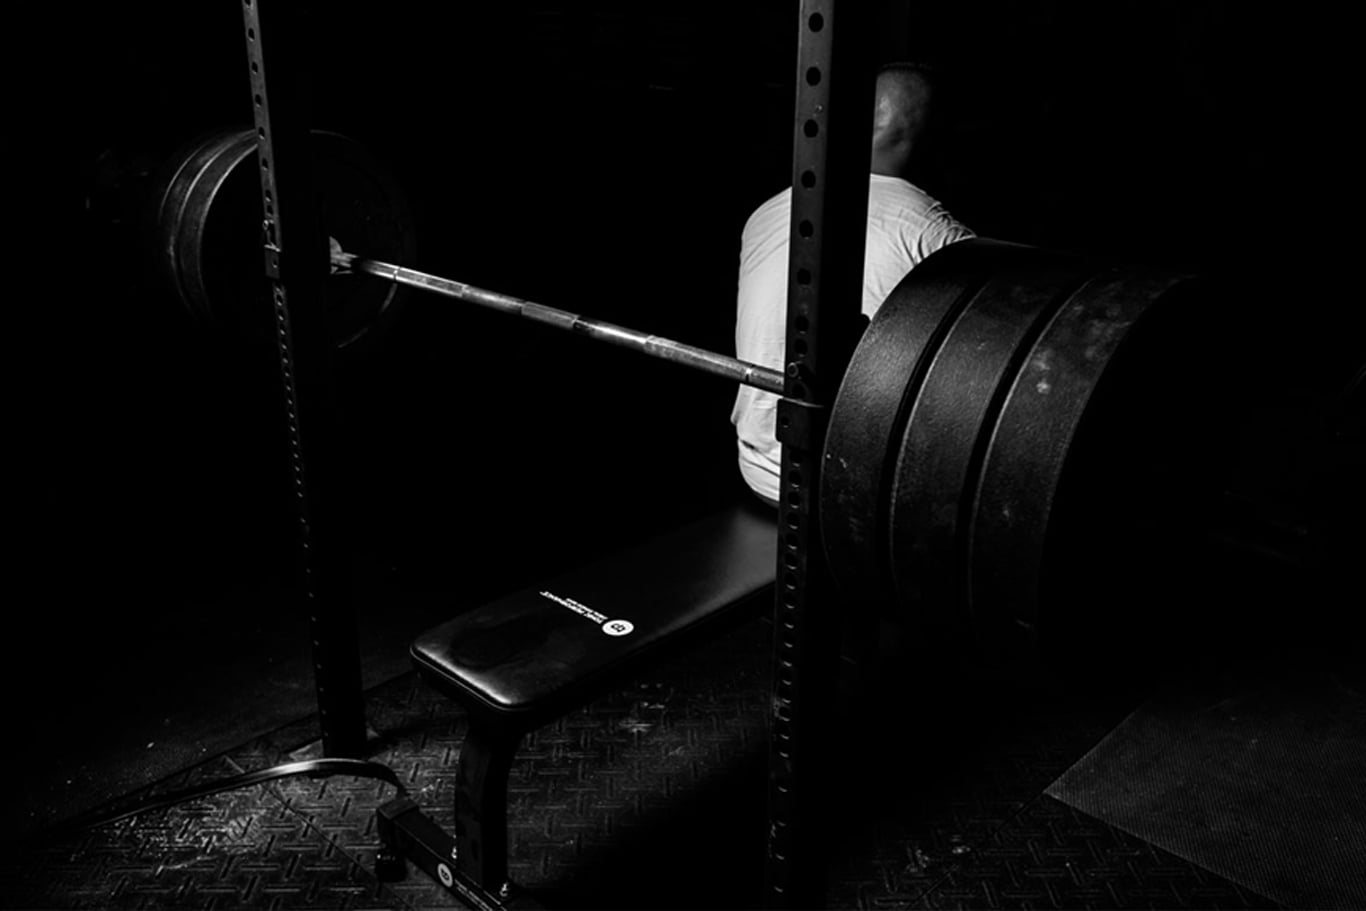 Loading patterns for strength and muscle gains